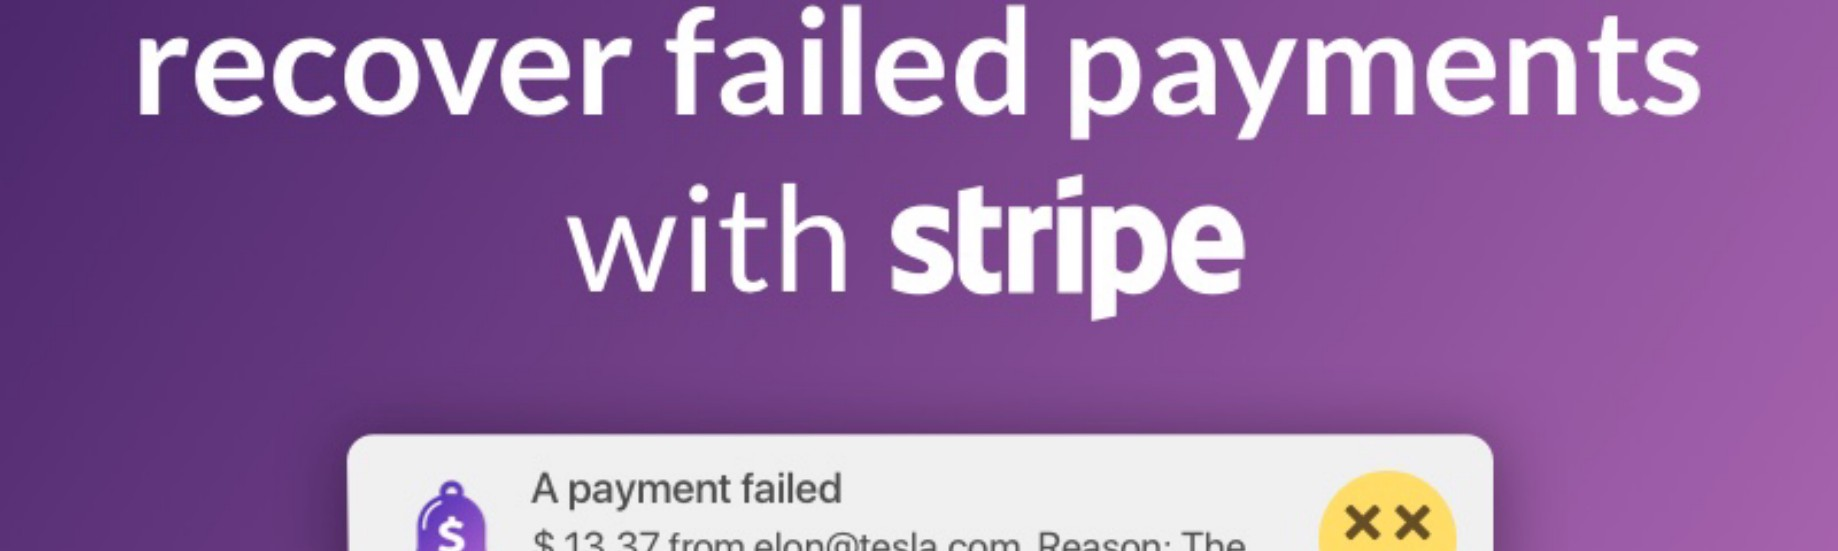 How to recover failed payments with Stripe — CashNotify